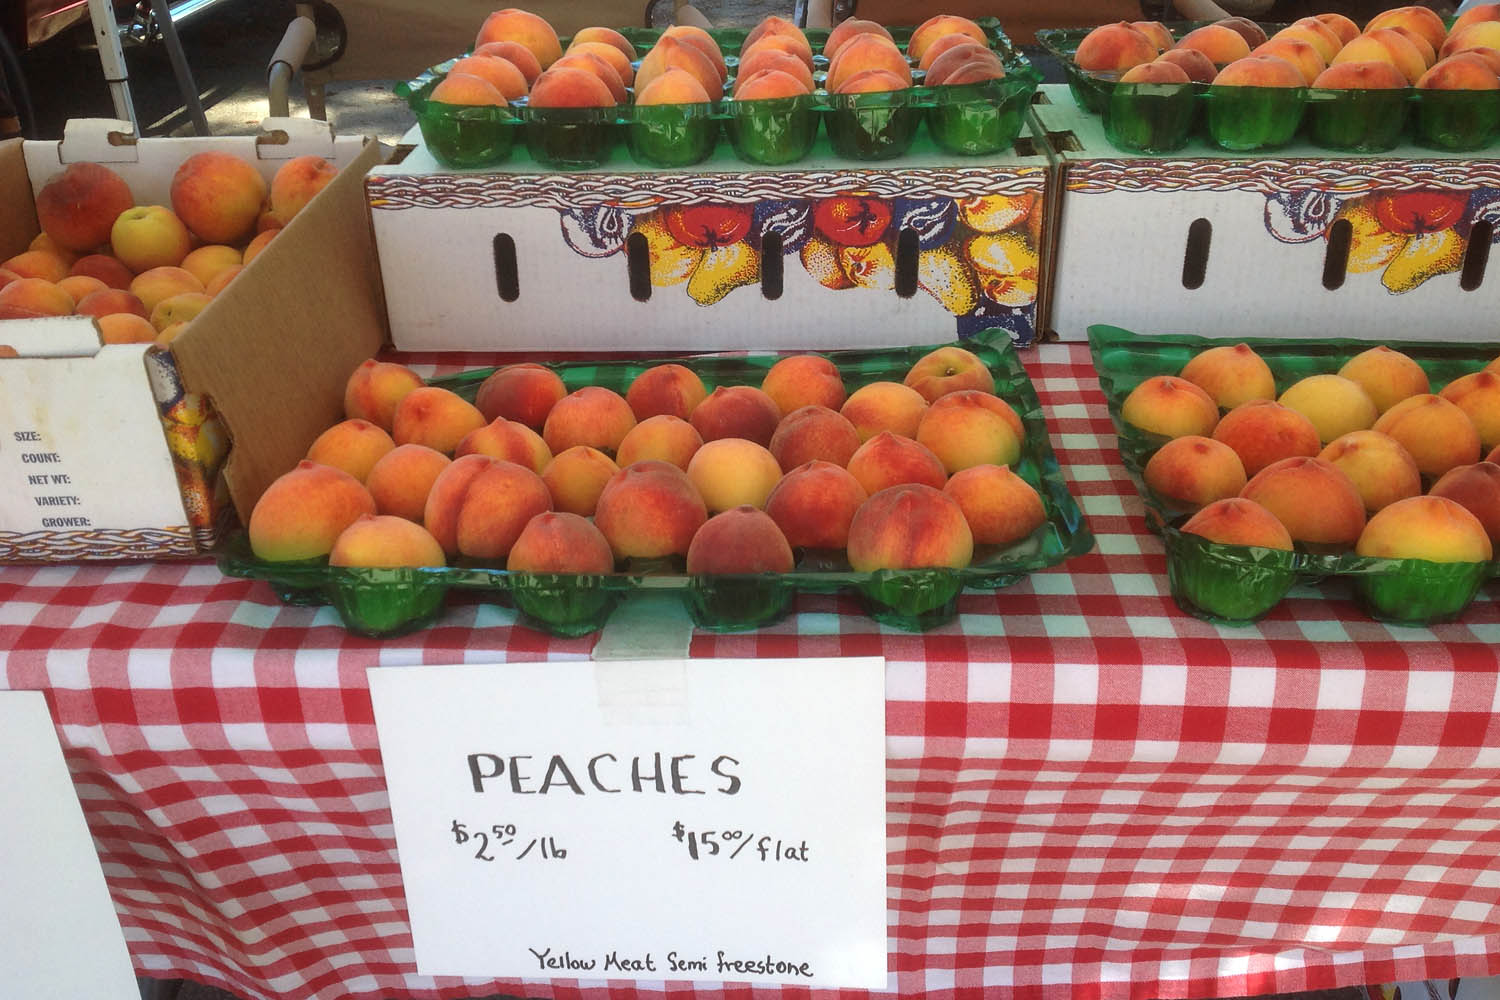 The best peaches at the South Lake Tahoe Farmers Market